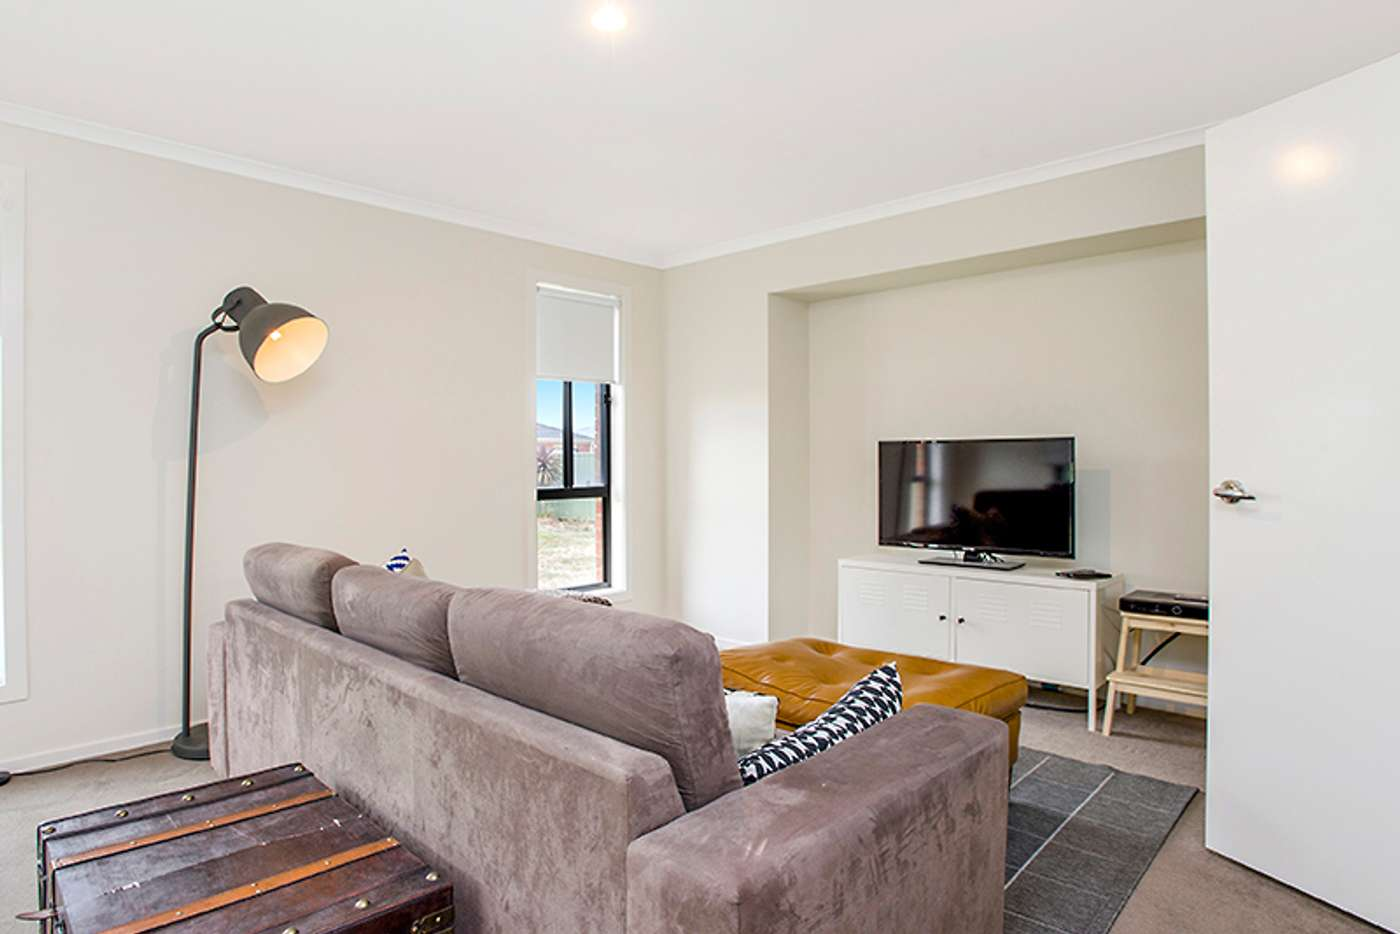 Seventh view of Homely house listing, 65 Haines Drive, Wyndham Vale VIC 3024